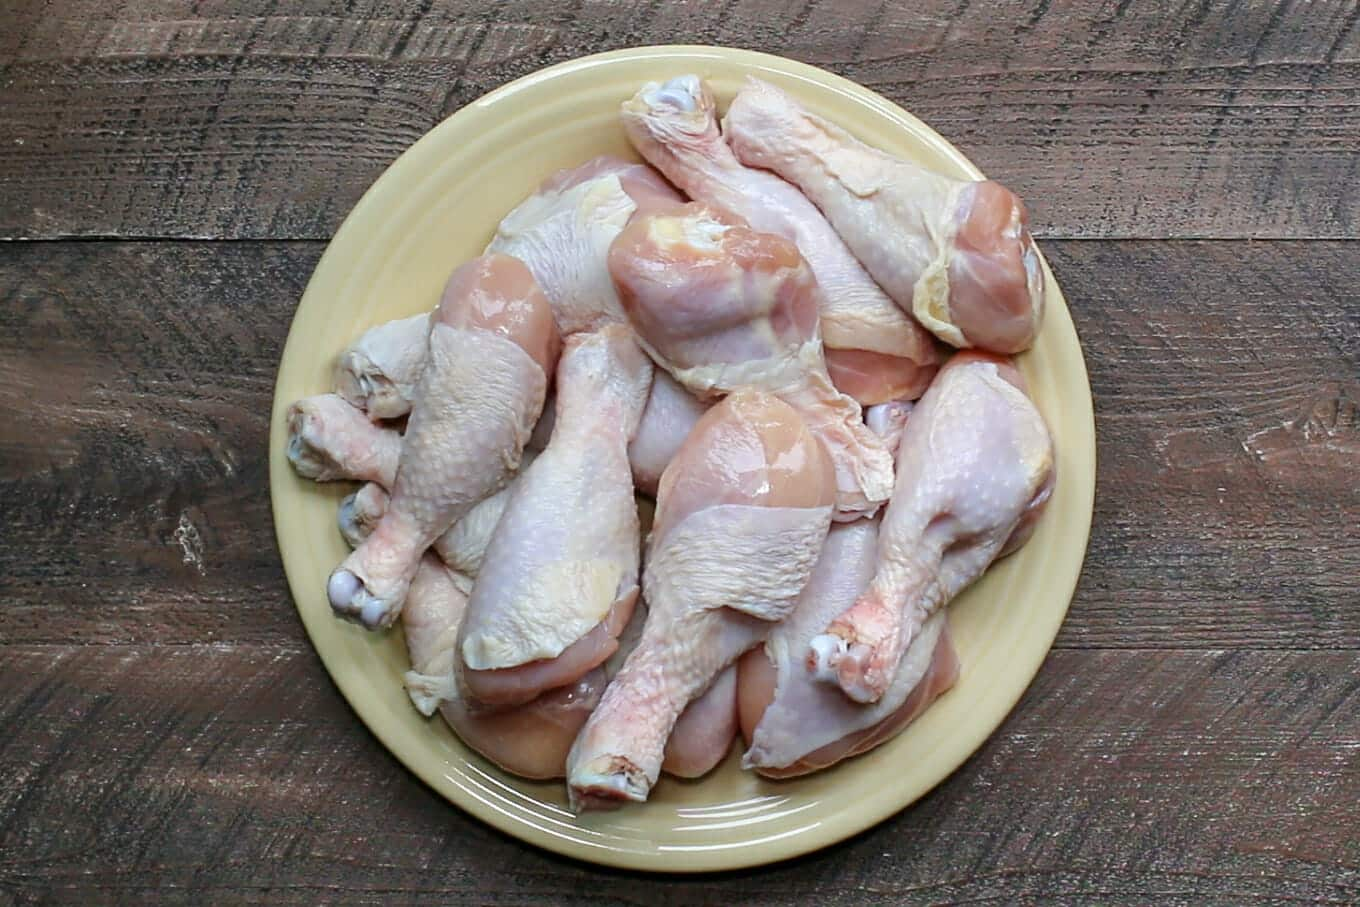 raw drumsticks on a yellow plate